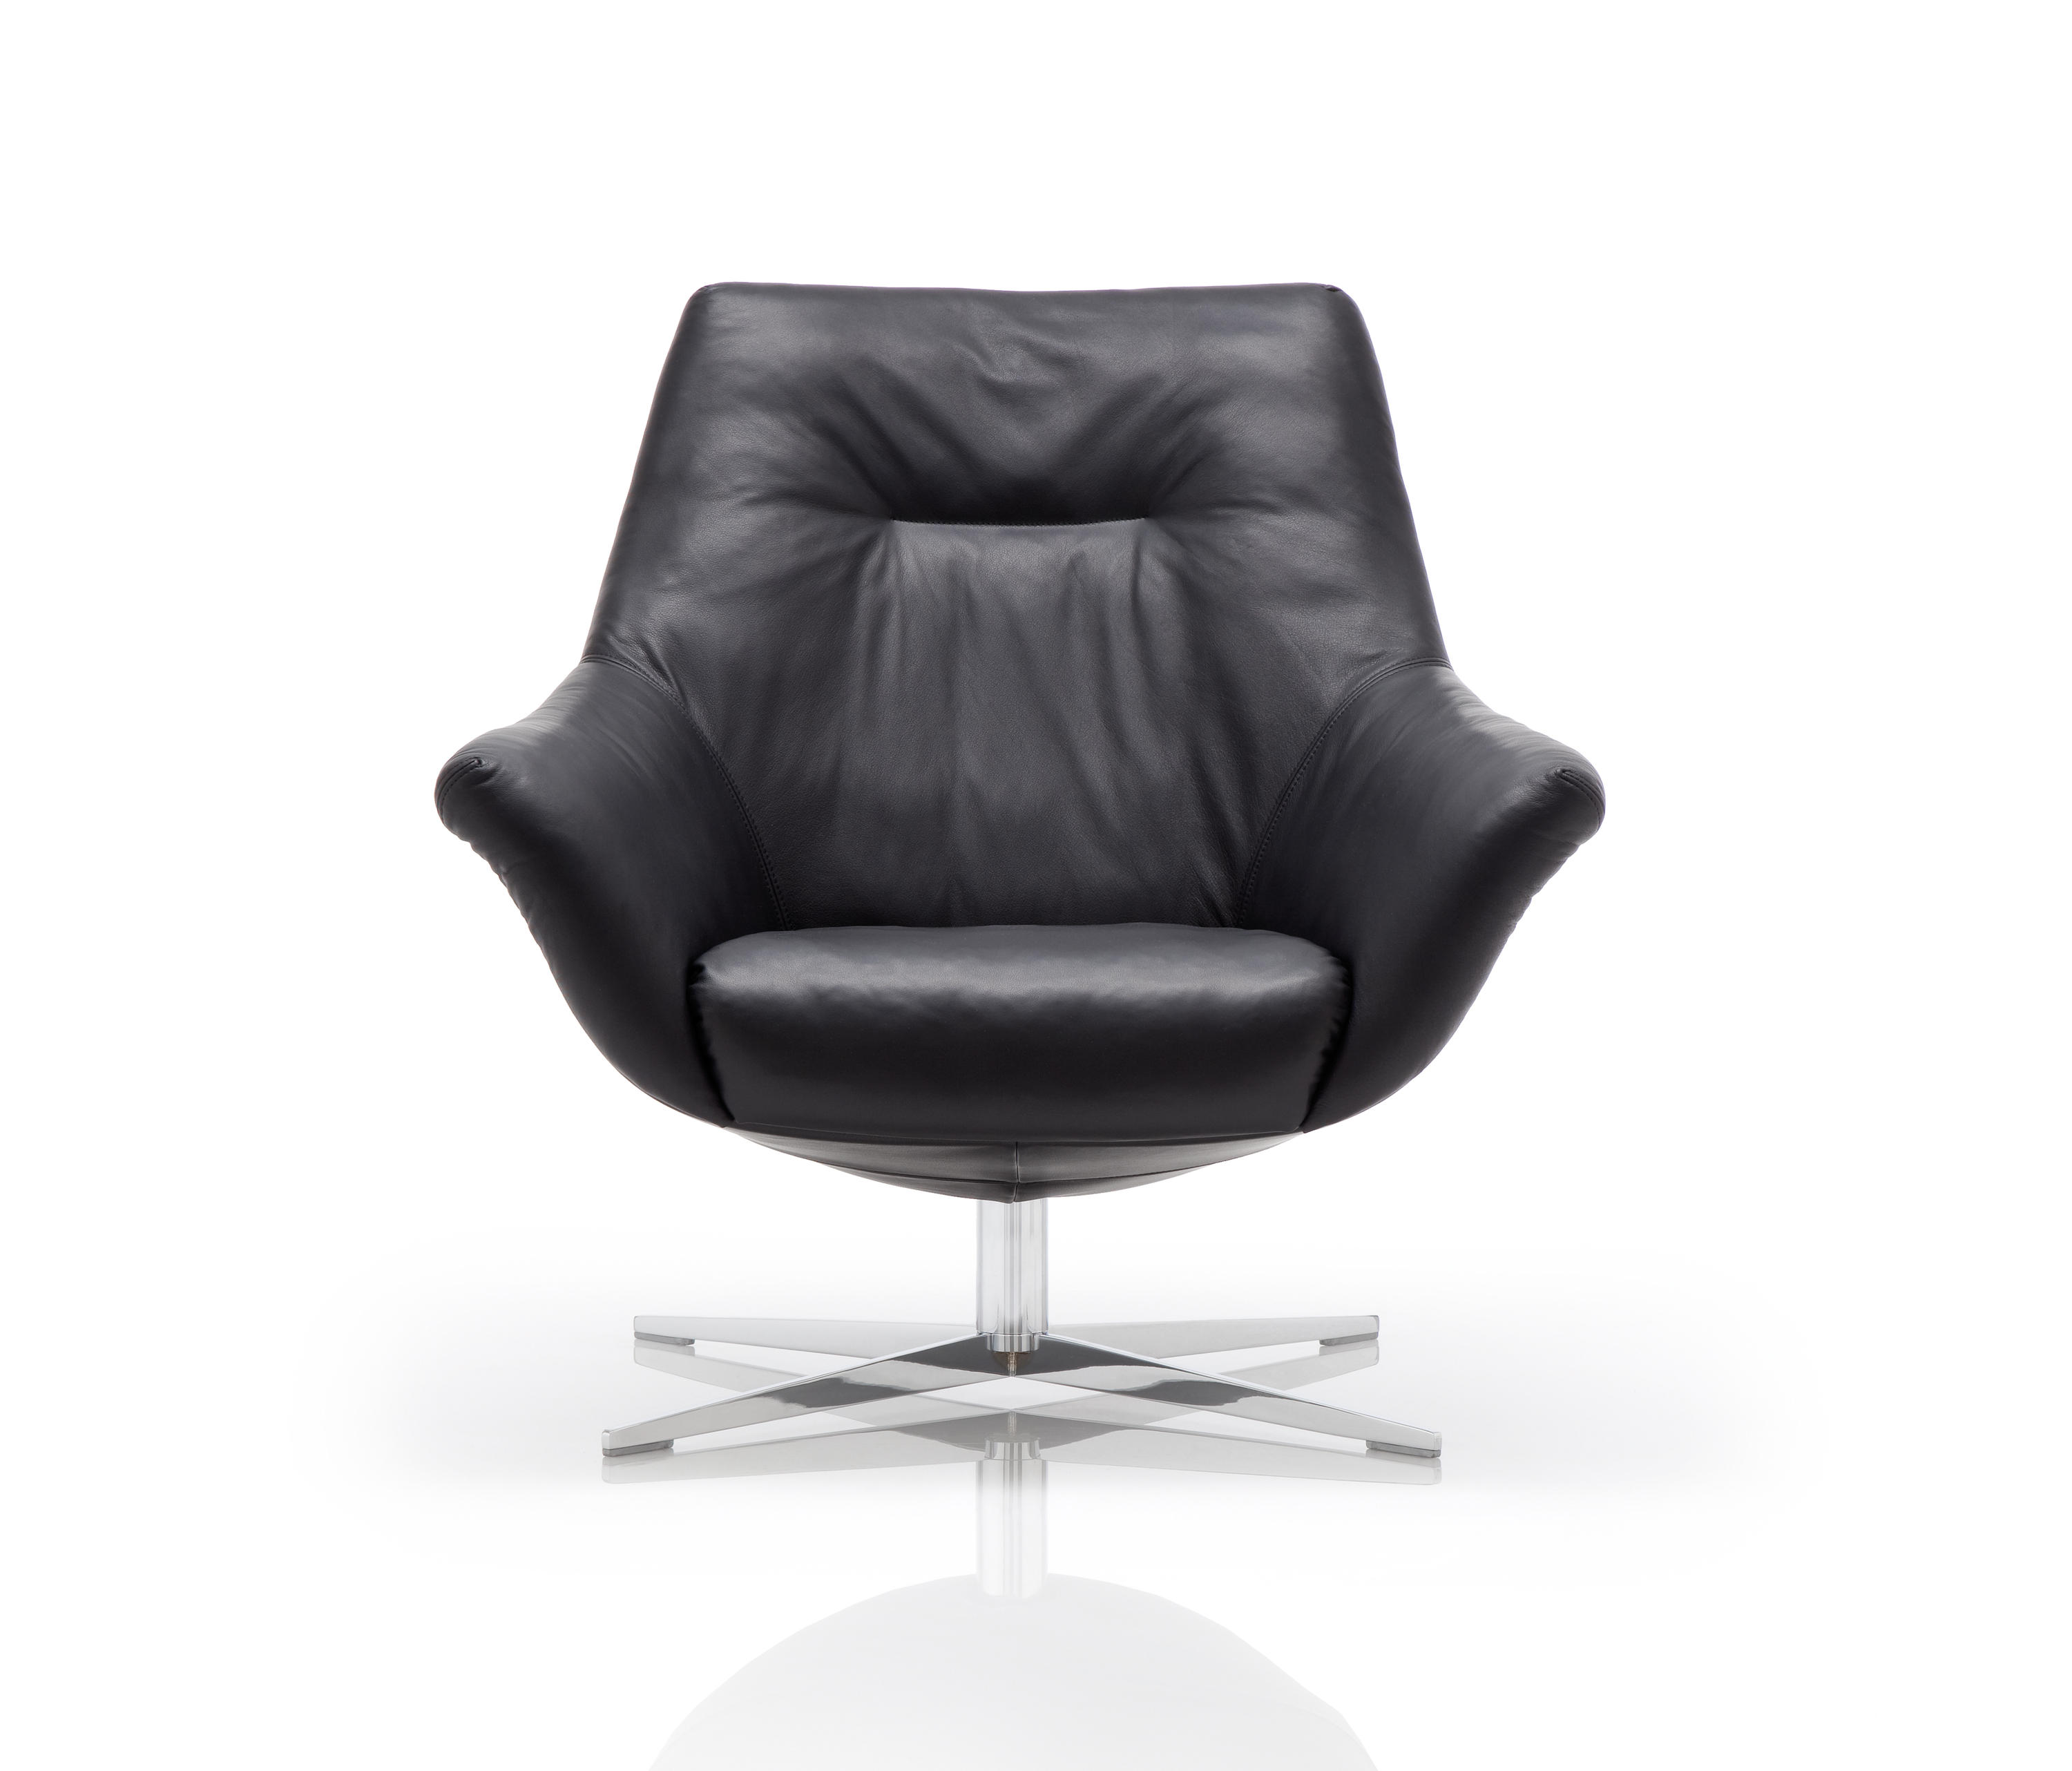 rolf benz 684. Rolf Benz 684. 566 By | Lounge Chairs 684